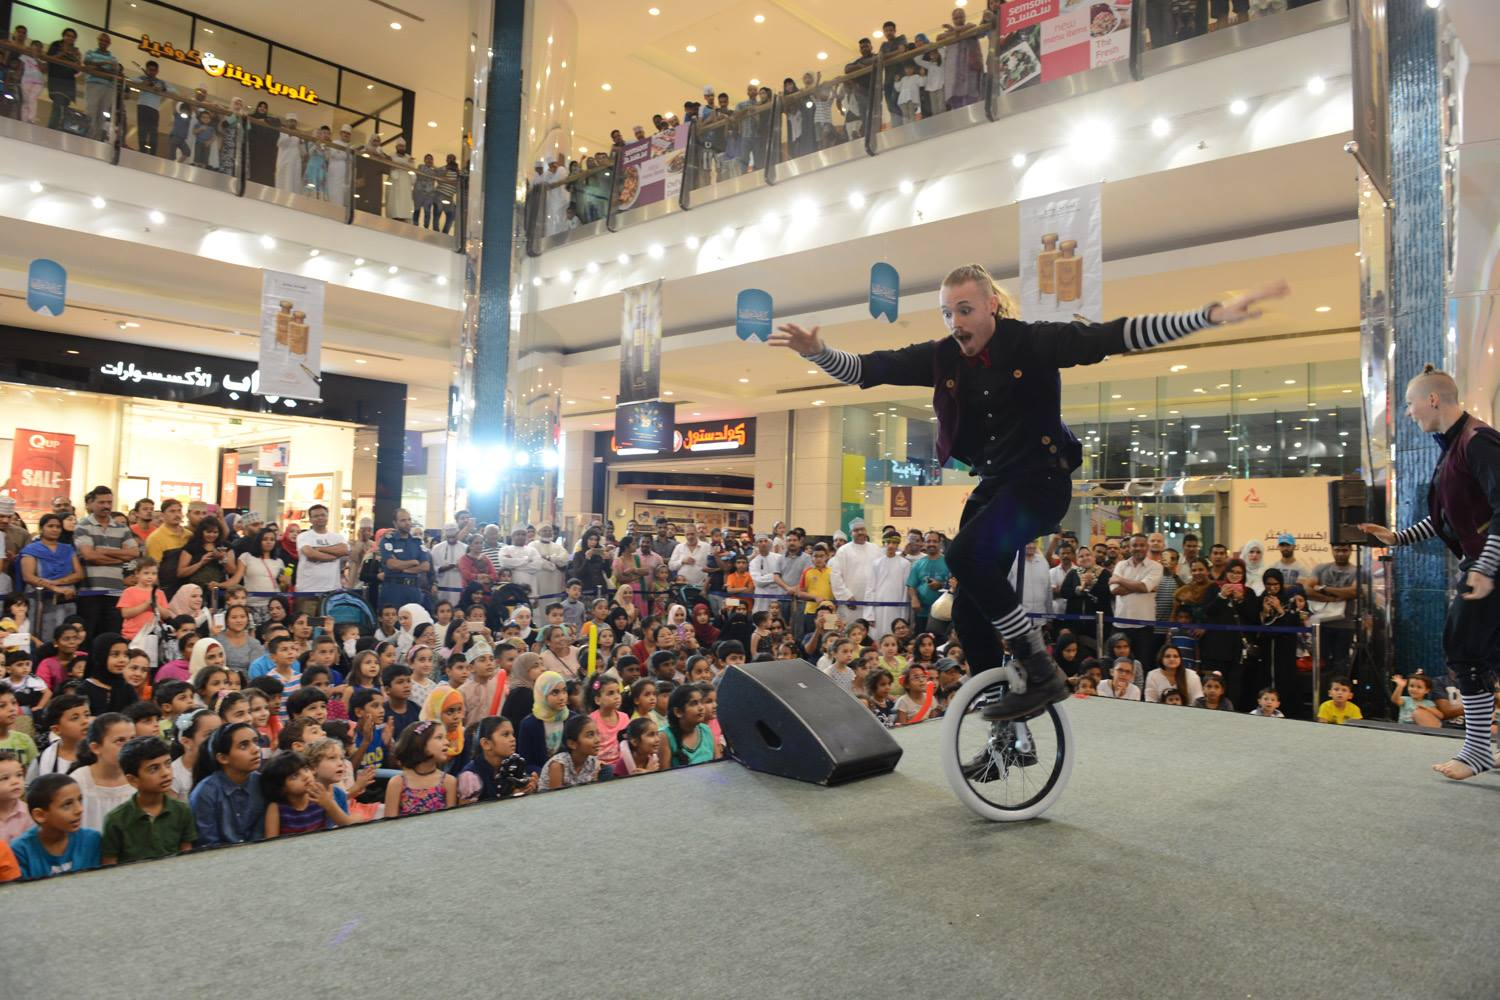 Unicyclist MGM Mall Muscat